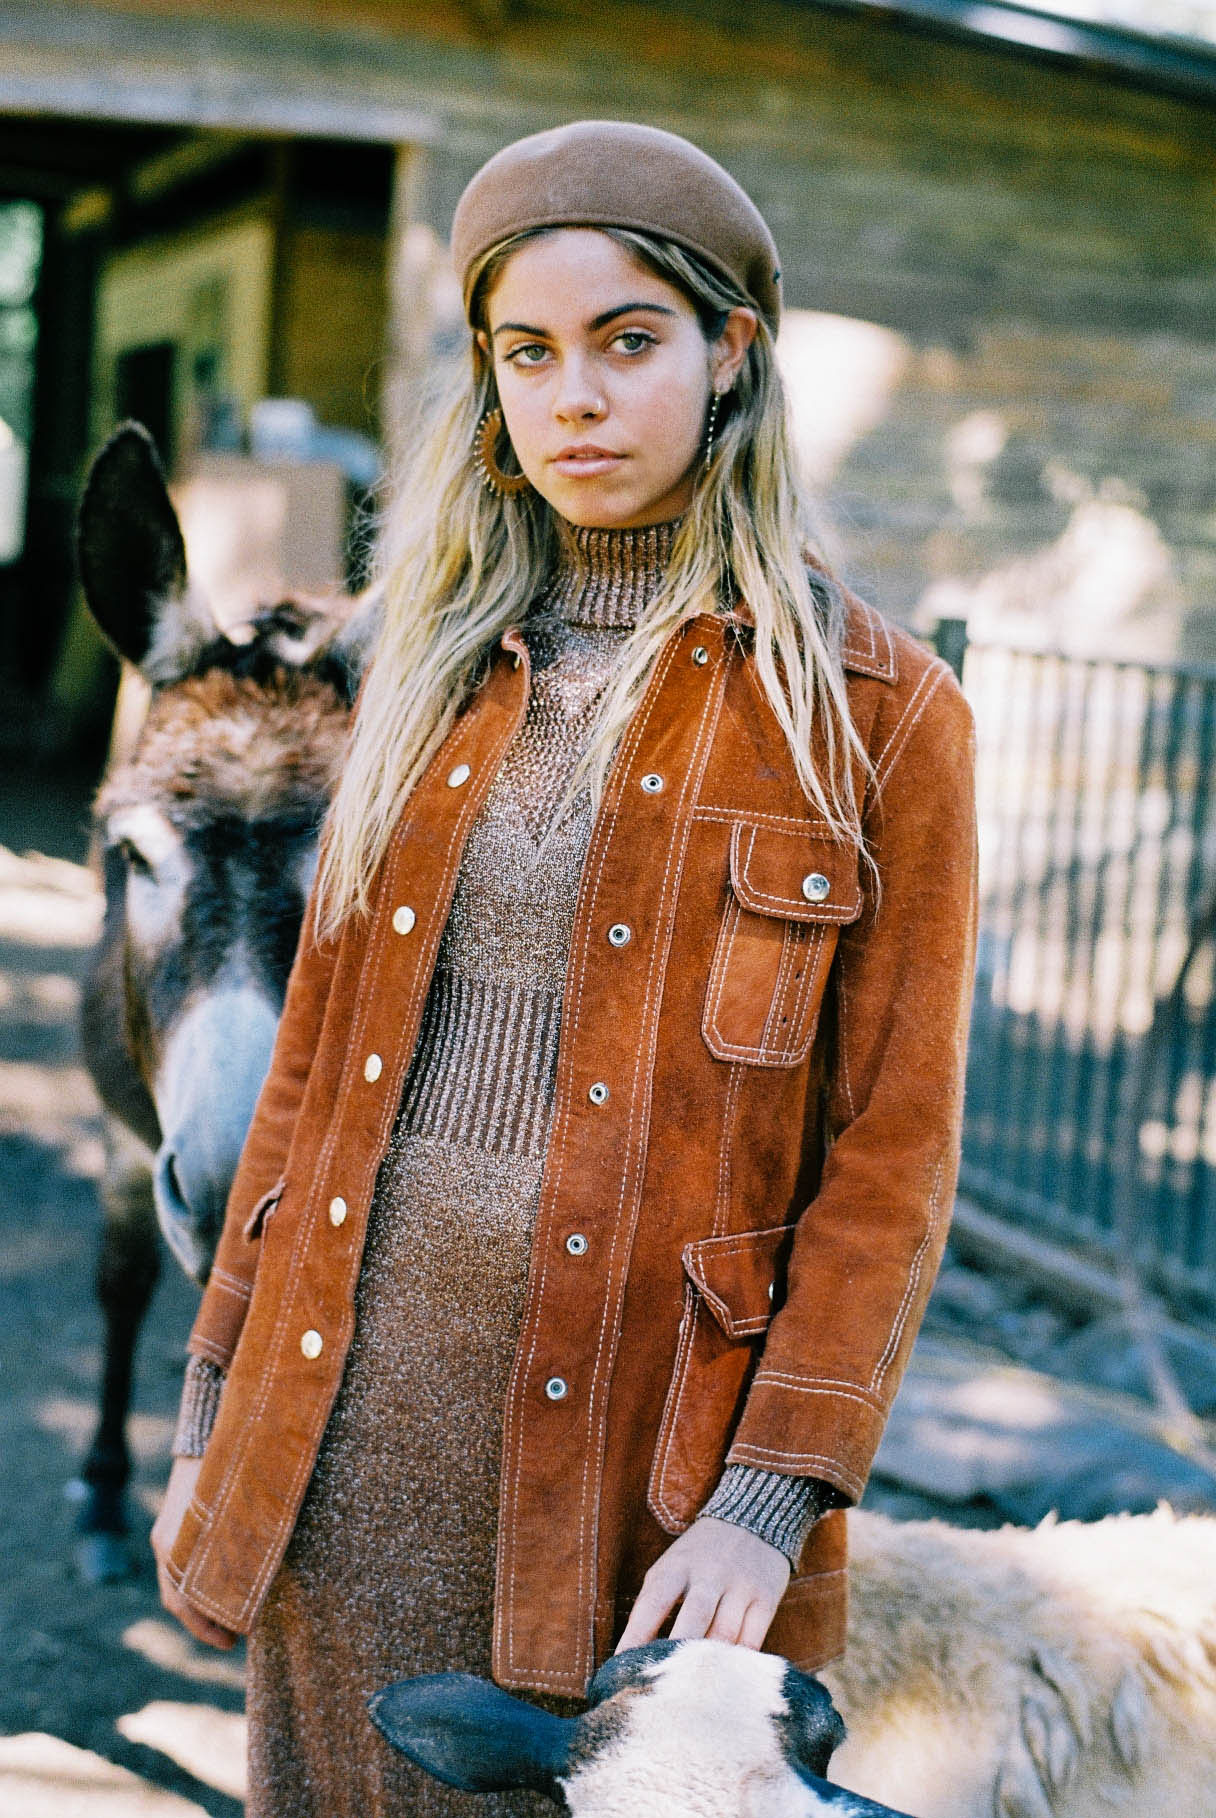 Vintage Suede Leather Jacket https://www.secondlovesvintage.com/